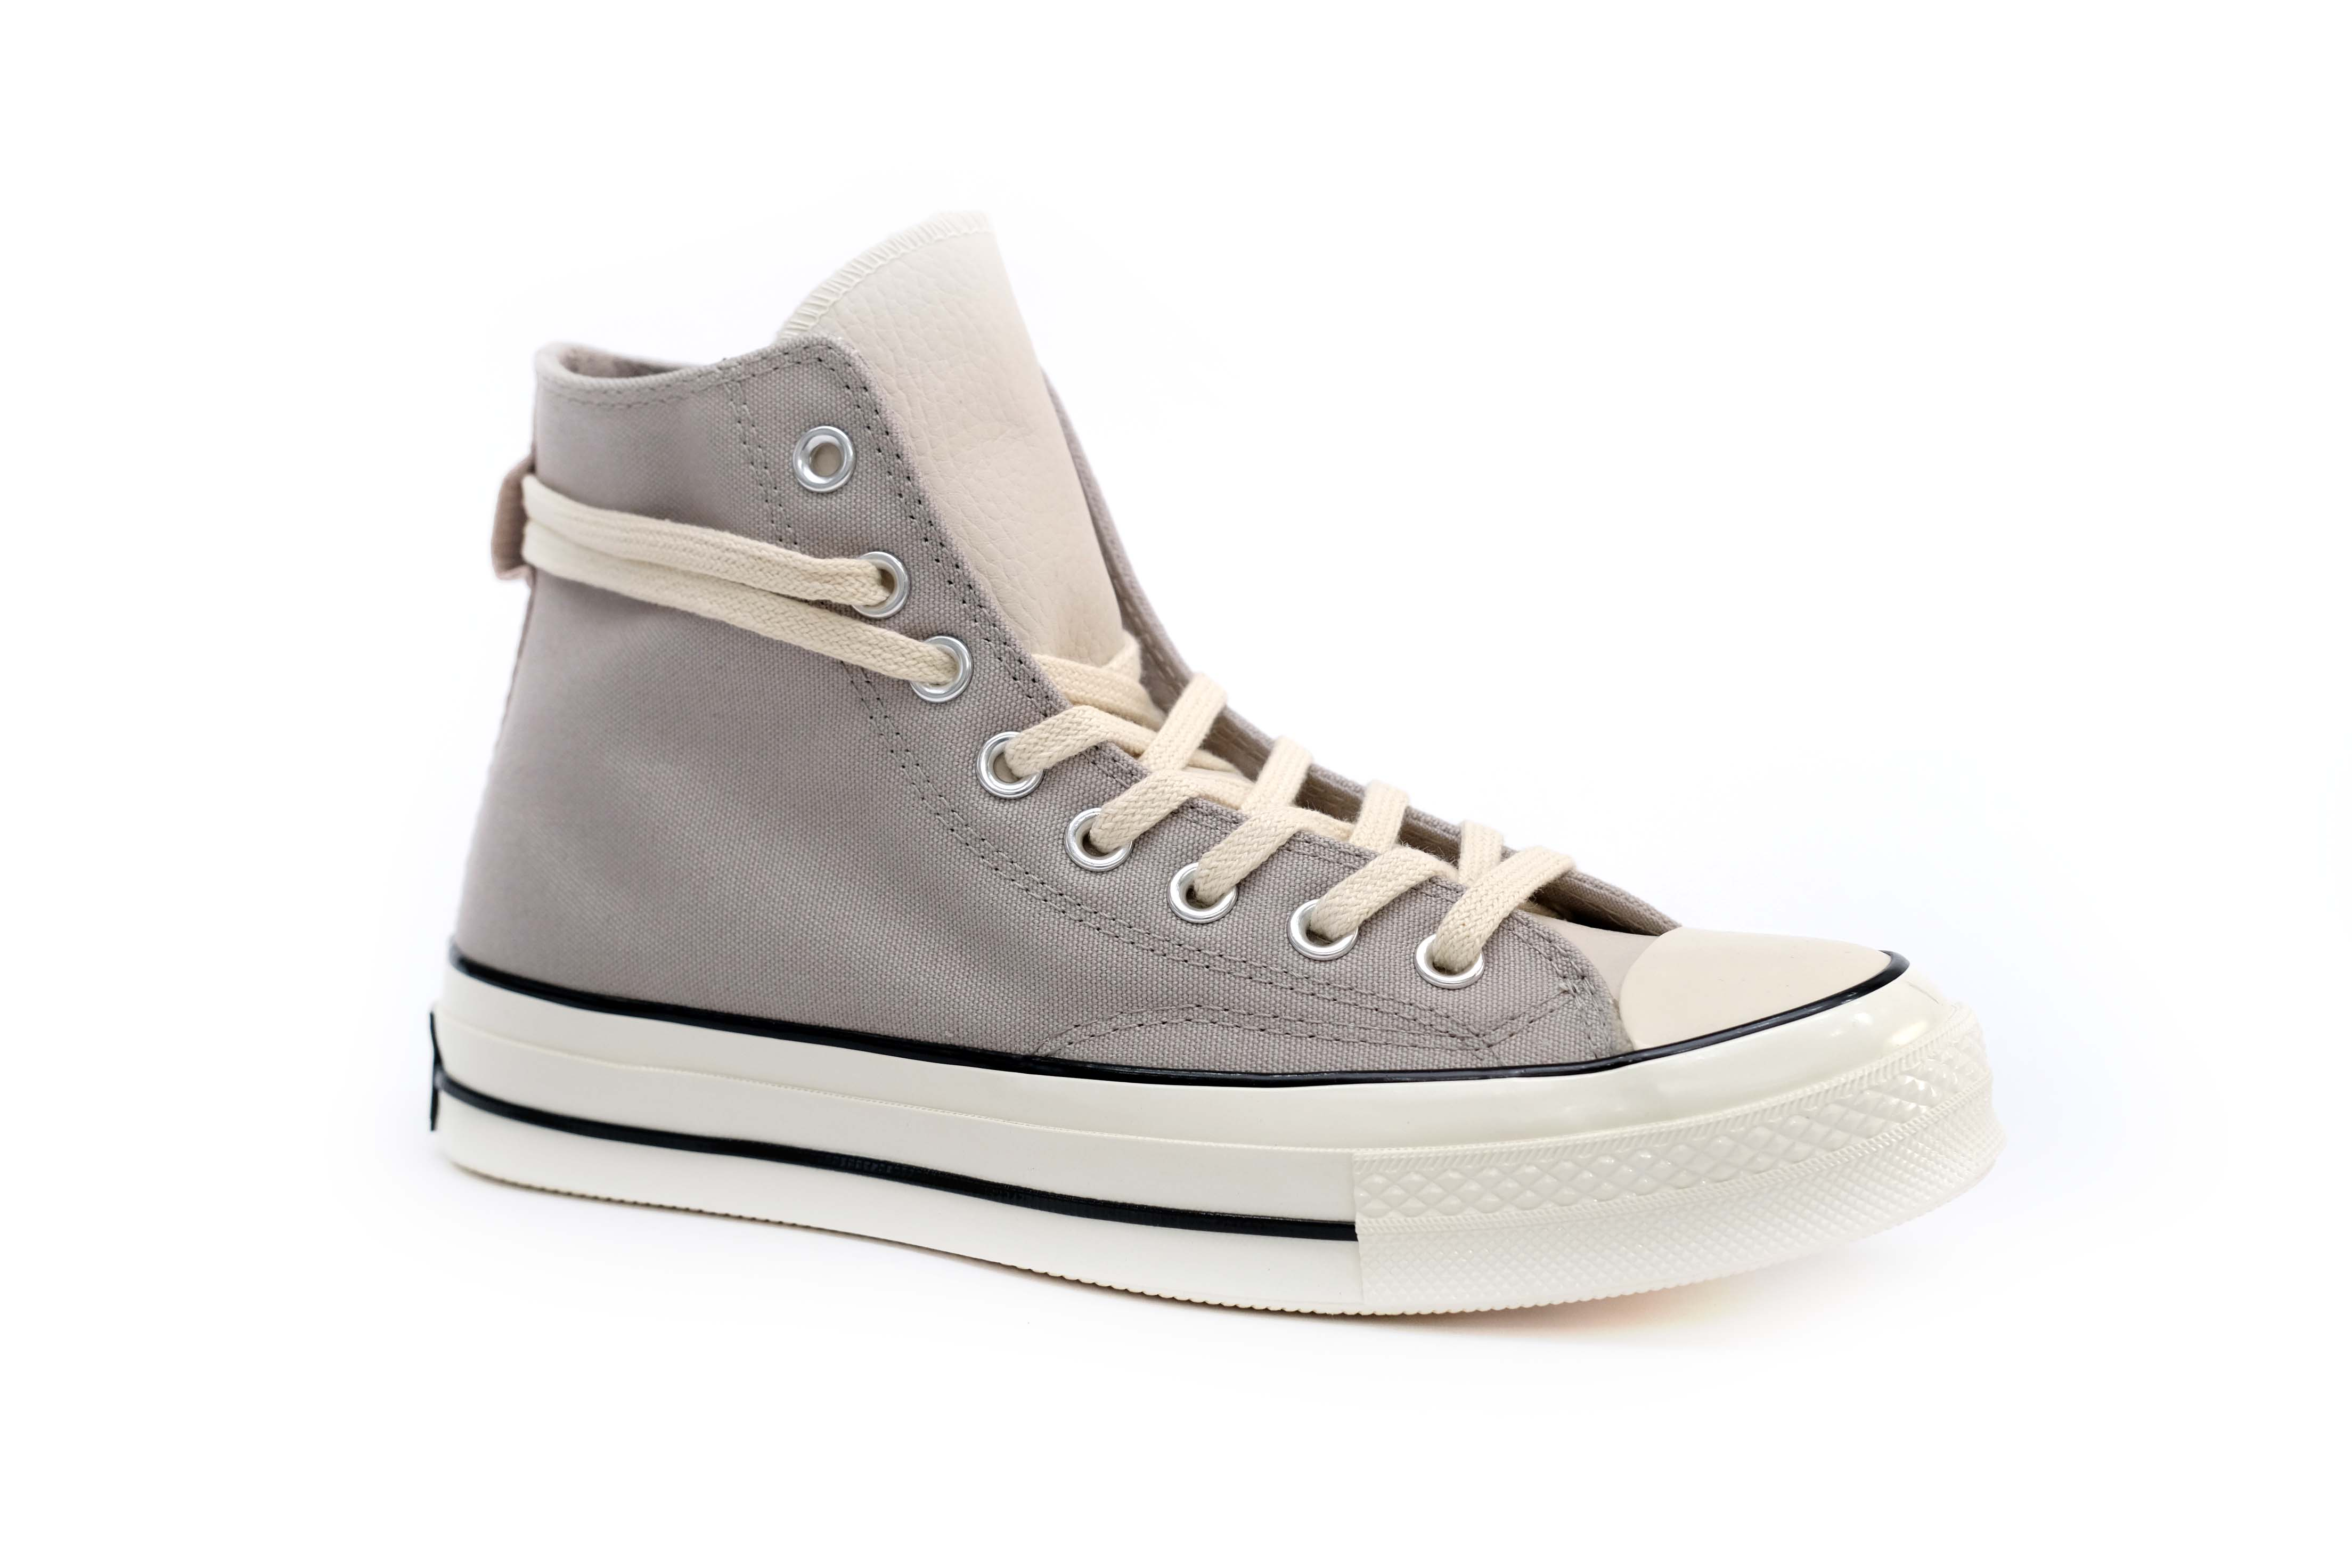 fear-of-god-x-chuck-70-hi-grey